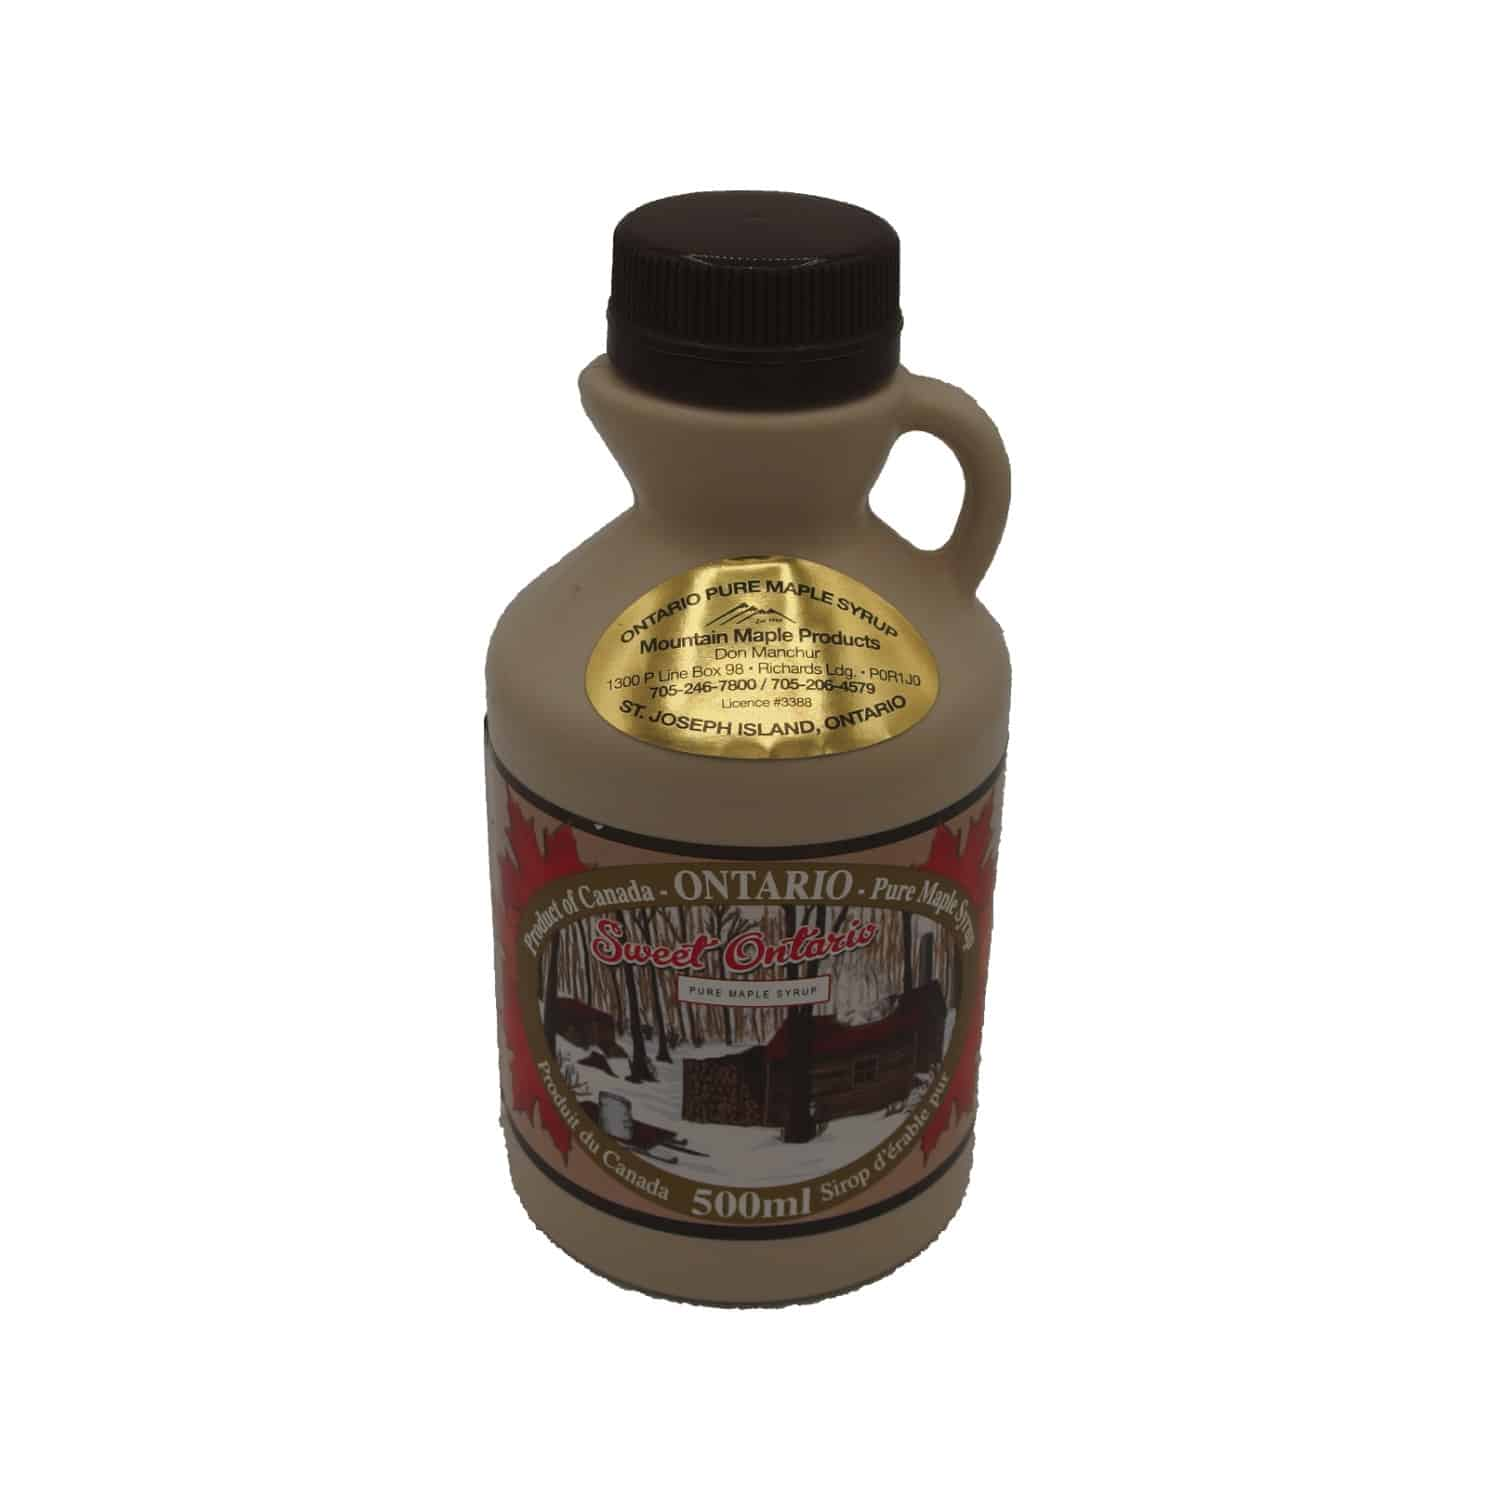 Pure Maple Syrup from mountain Maple Products